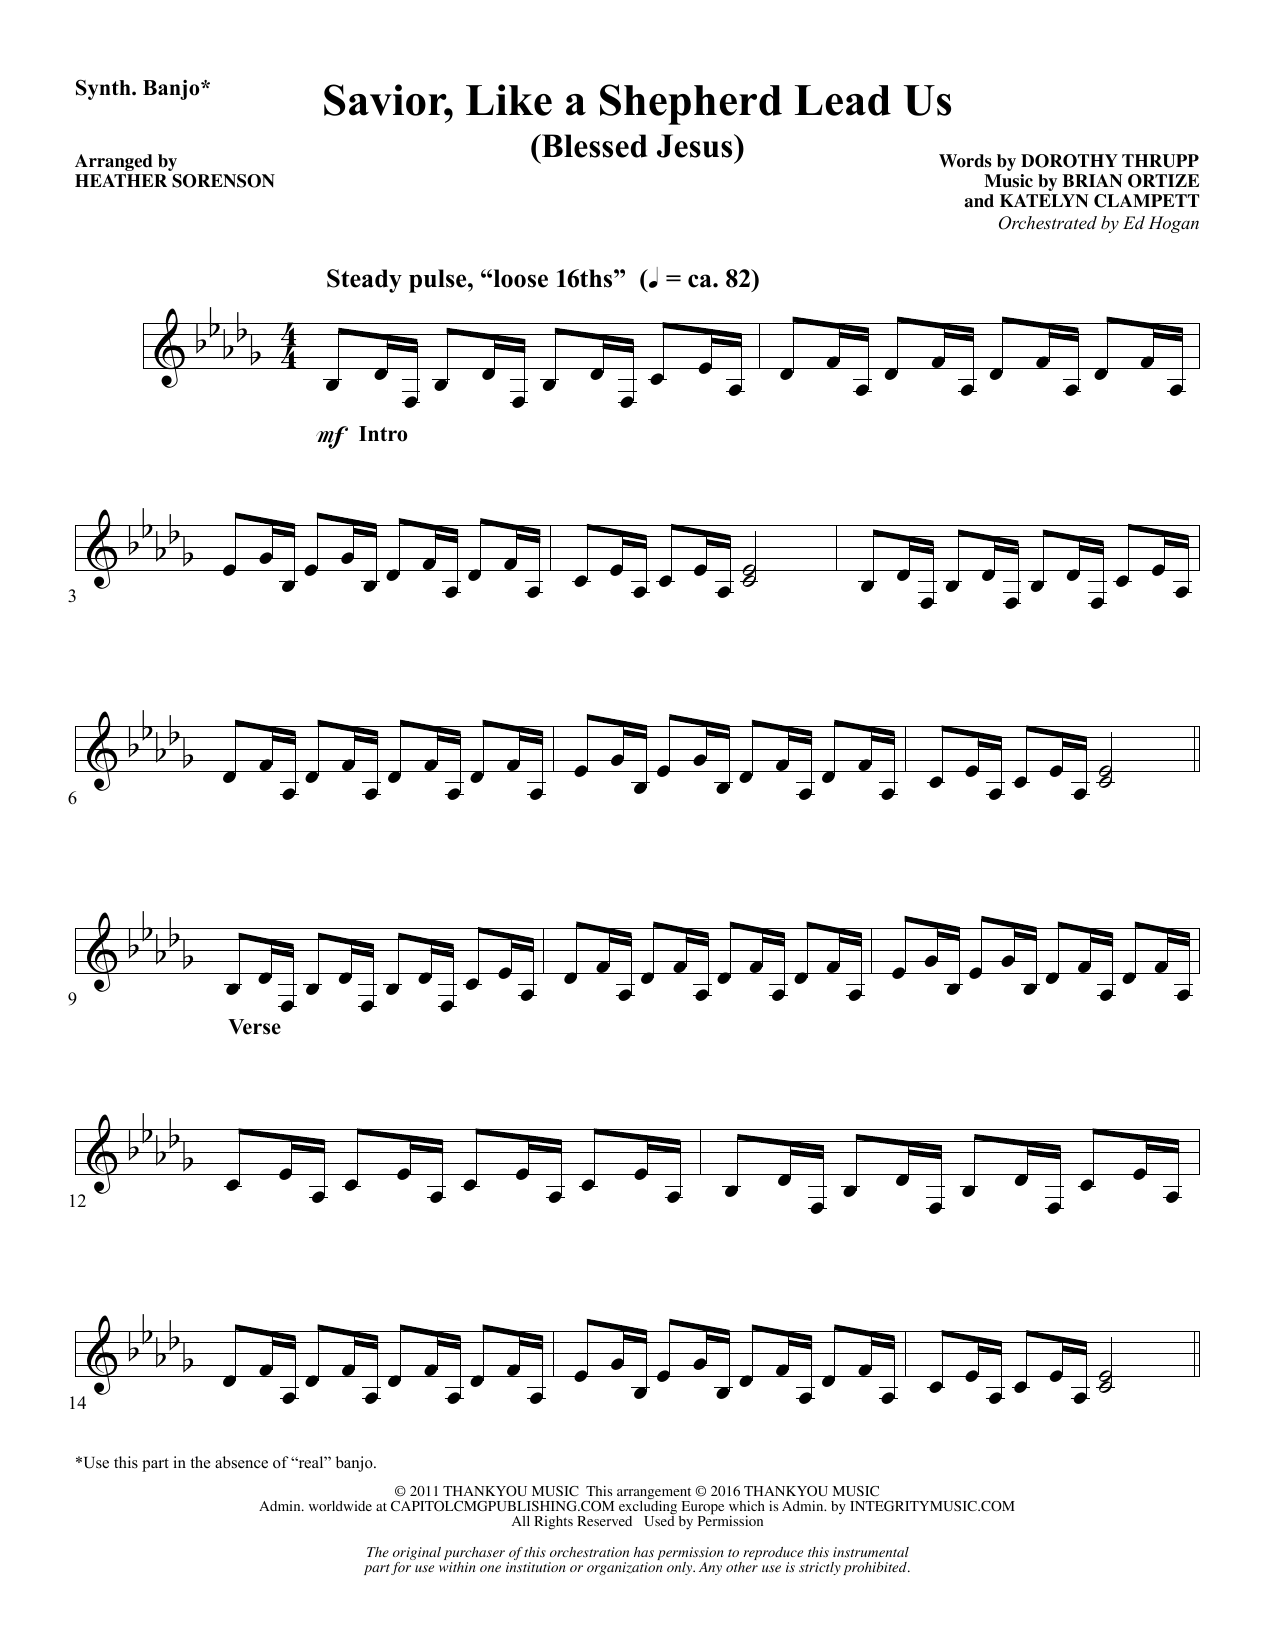 Savior, Like a Shepherd Lead Us (Blessed Jesus) - Synthesizer Sheet Music